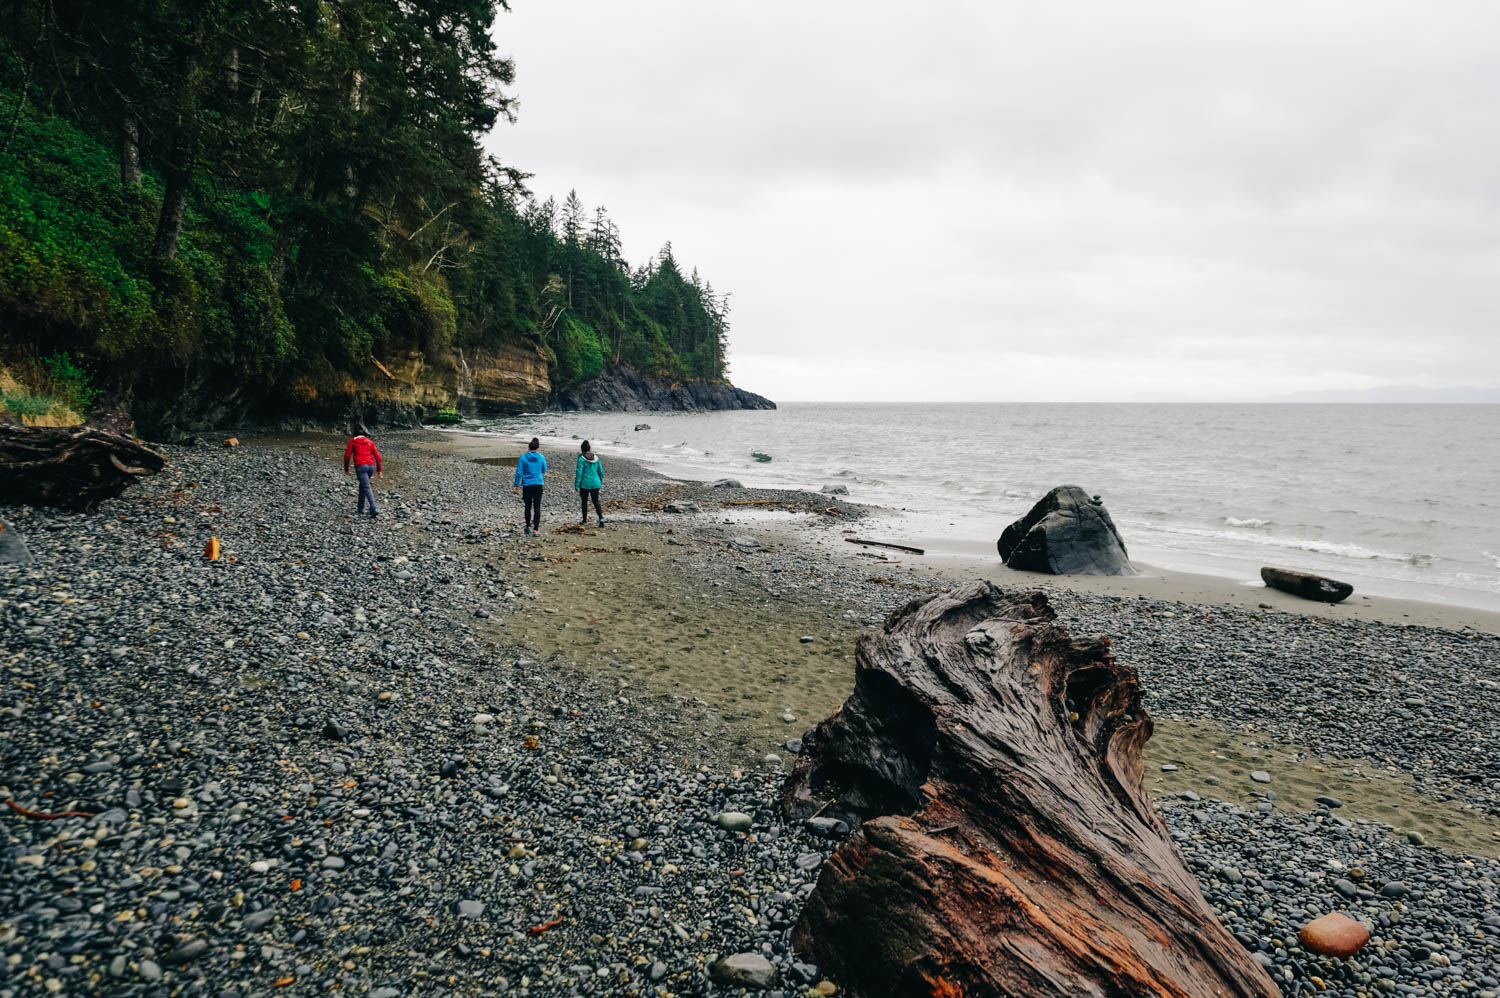 Our birthday hike tradition continues with this beautiful hike on the Juan De Fuca Trail that leads to an isolated beach for my 41st birthday.